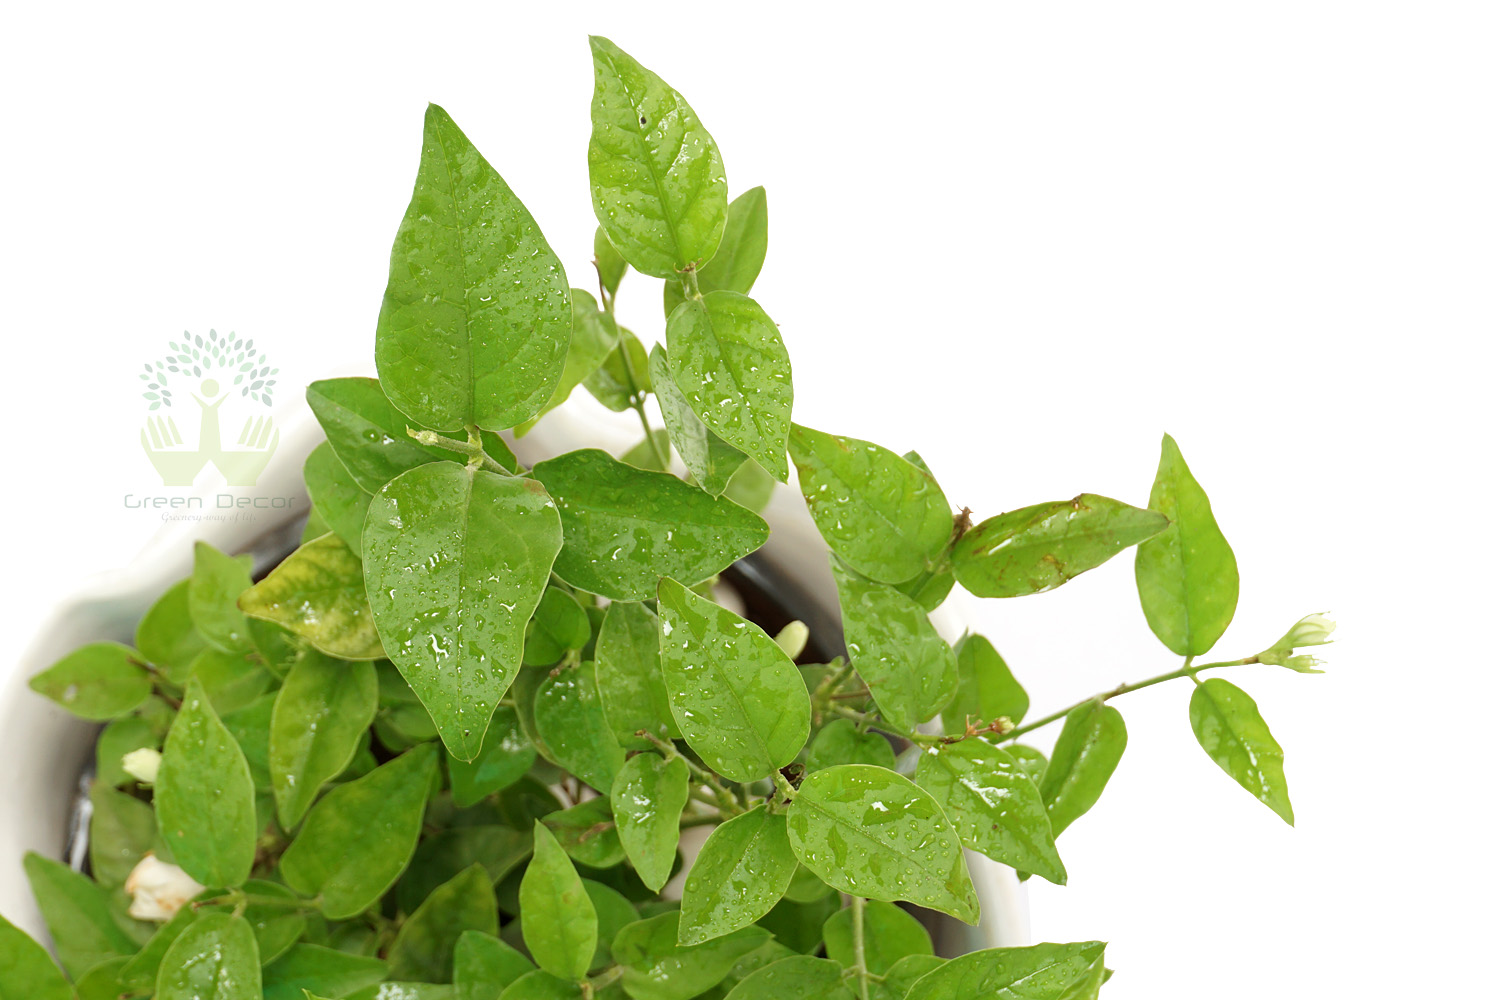 Buy Mogra Plants Leaves View , White Pots and seeds in Delhi NCR by the best online nursery shop Greendecor.